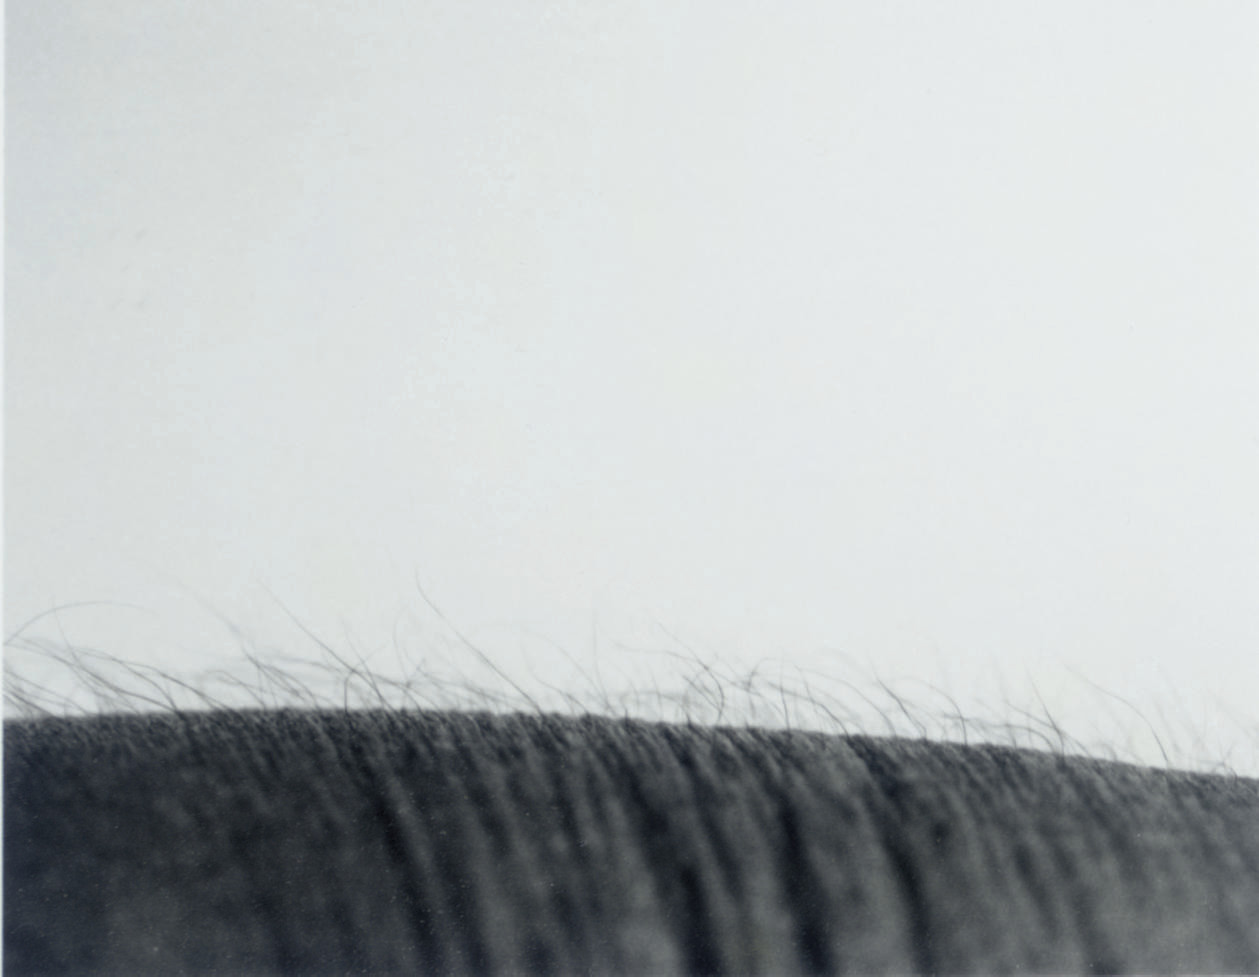 Study After Untitled Landscape, 1987